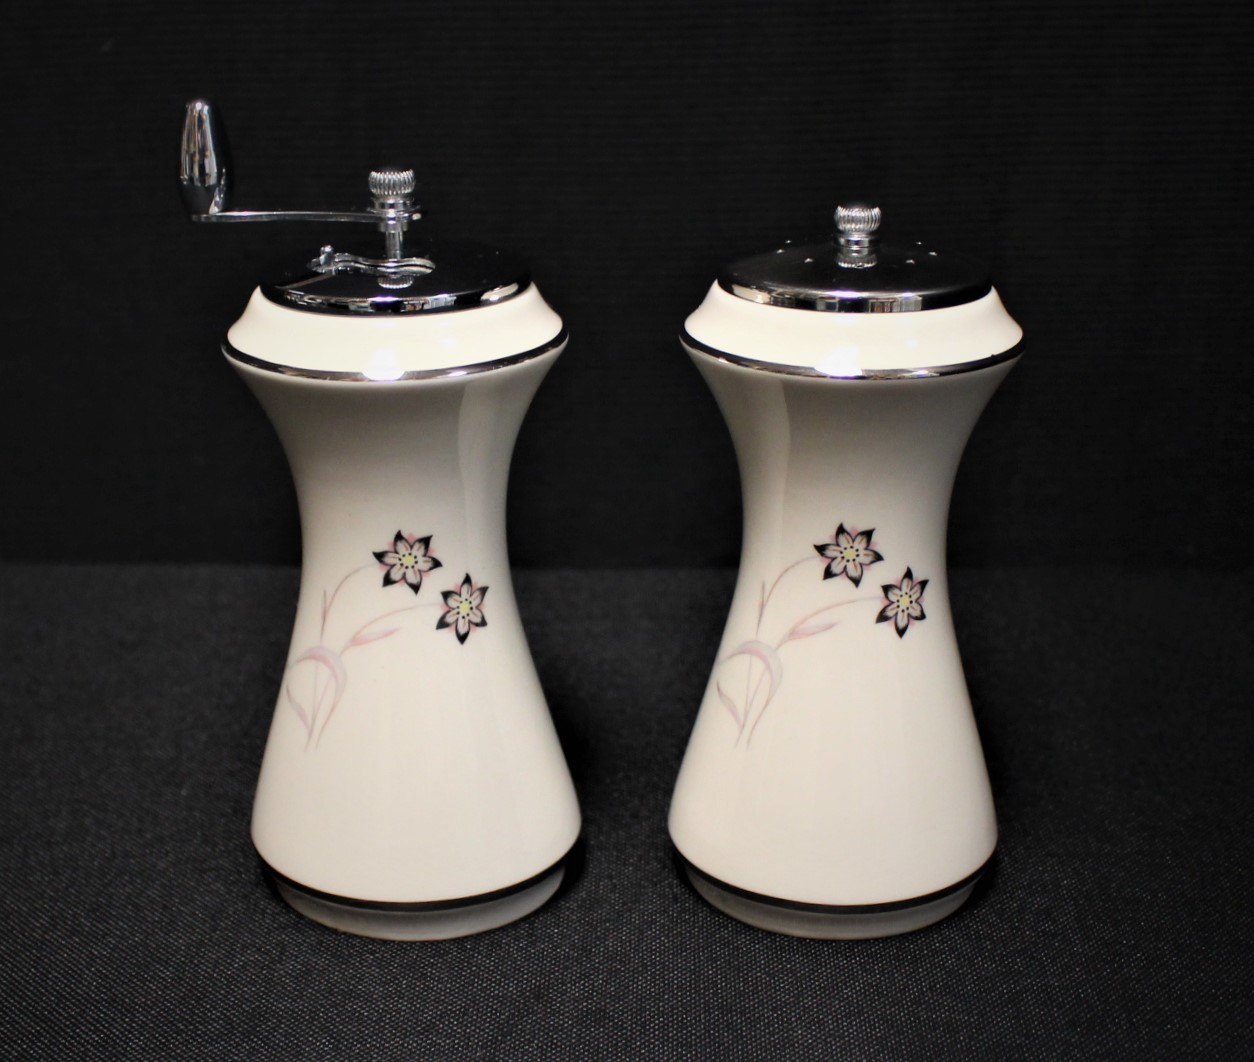 Flintridge China Starflower Salt & Pepper Mill Set w/ Platinum Trim